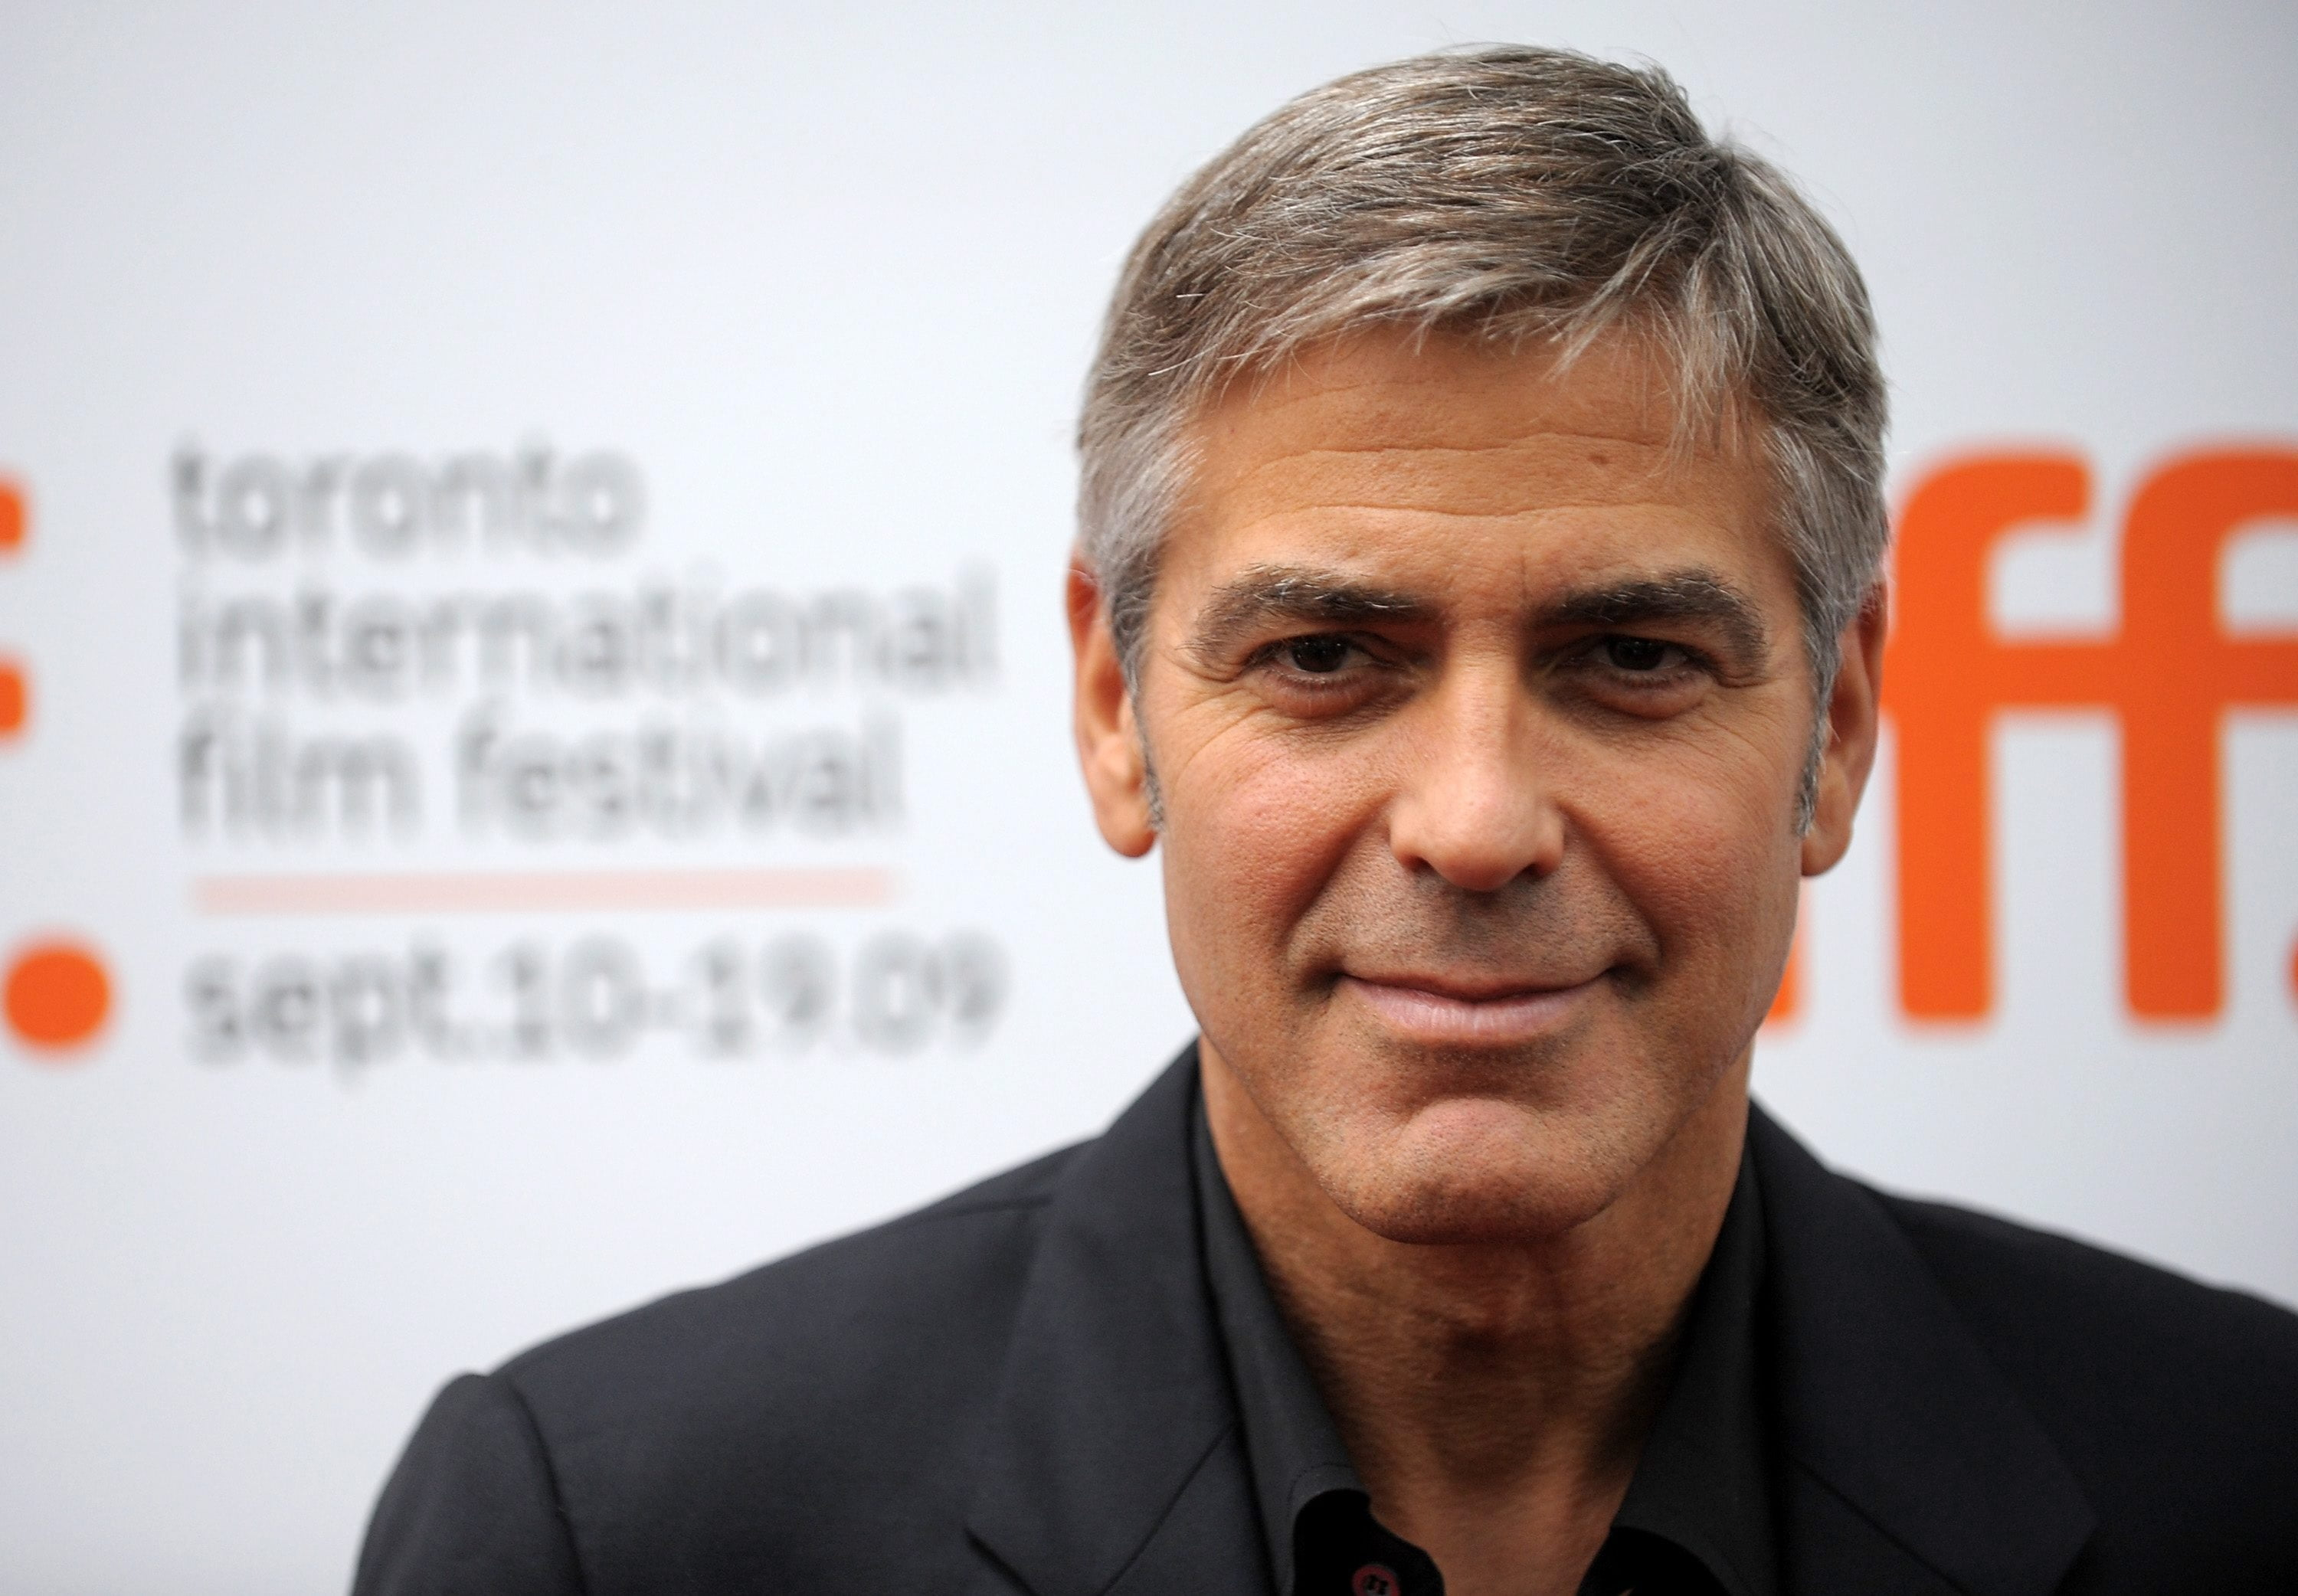 HD wallpaper George Clooney celebrity actor hollywood gray 3000x2084